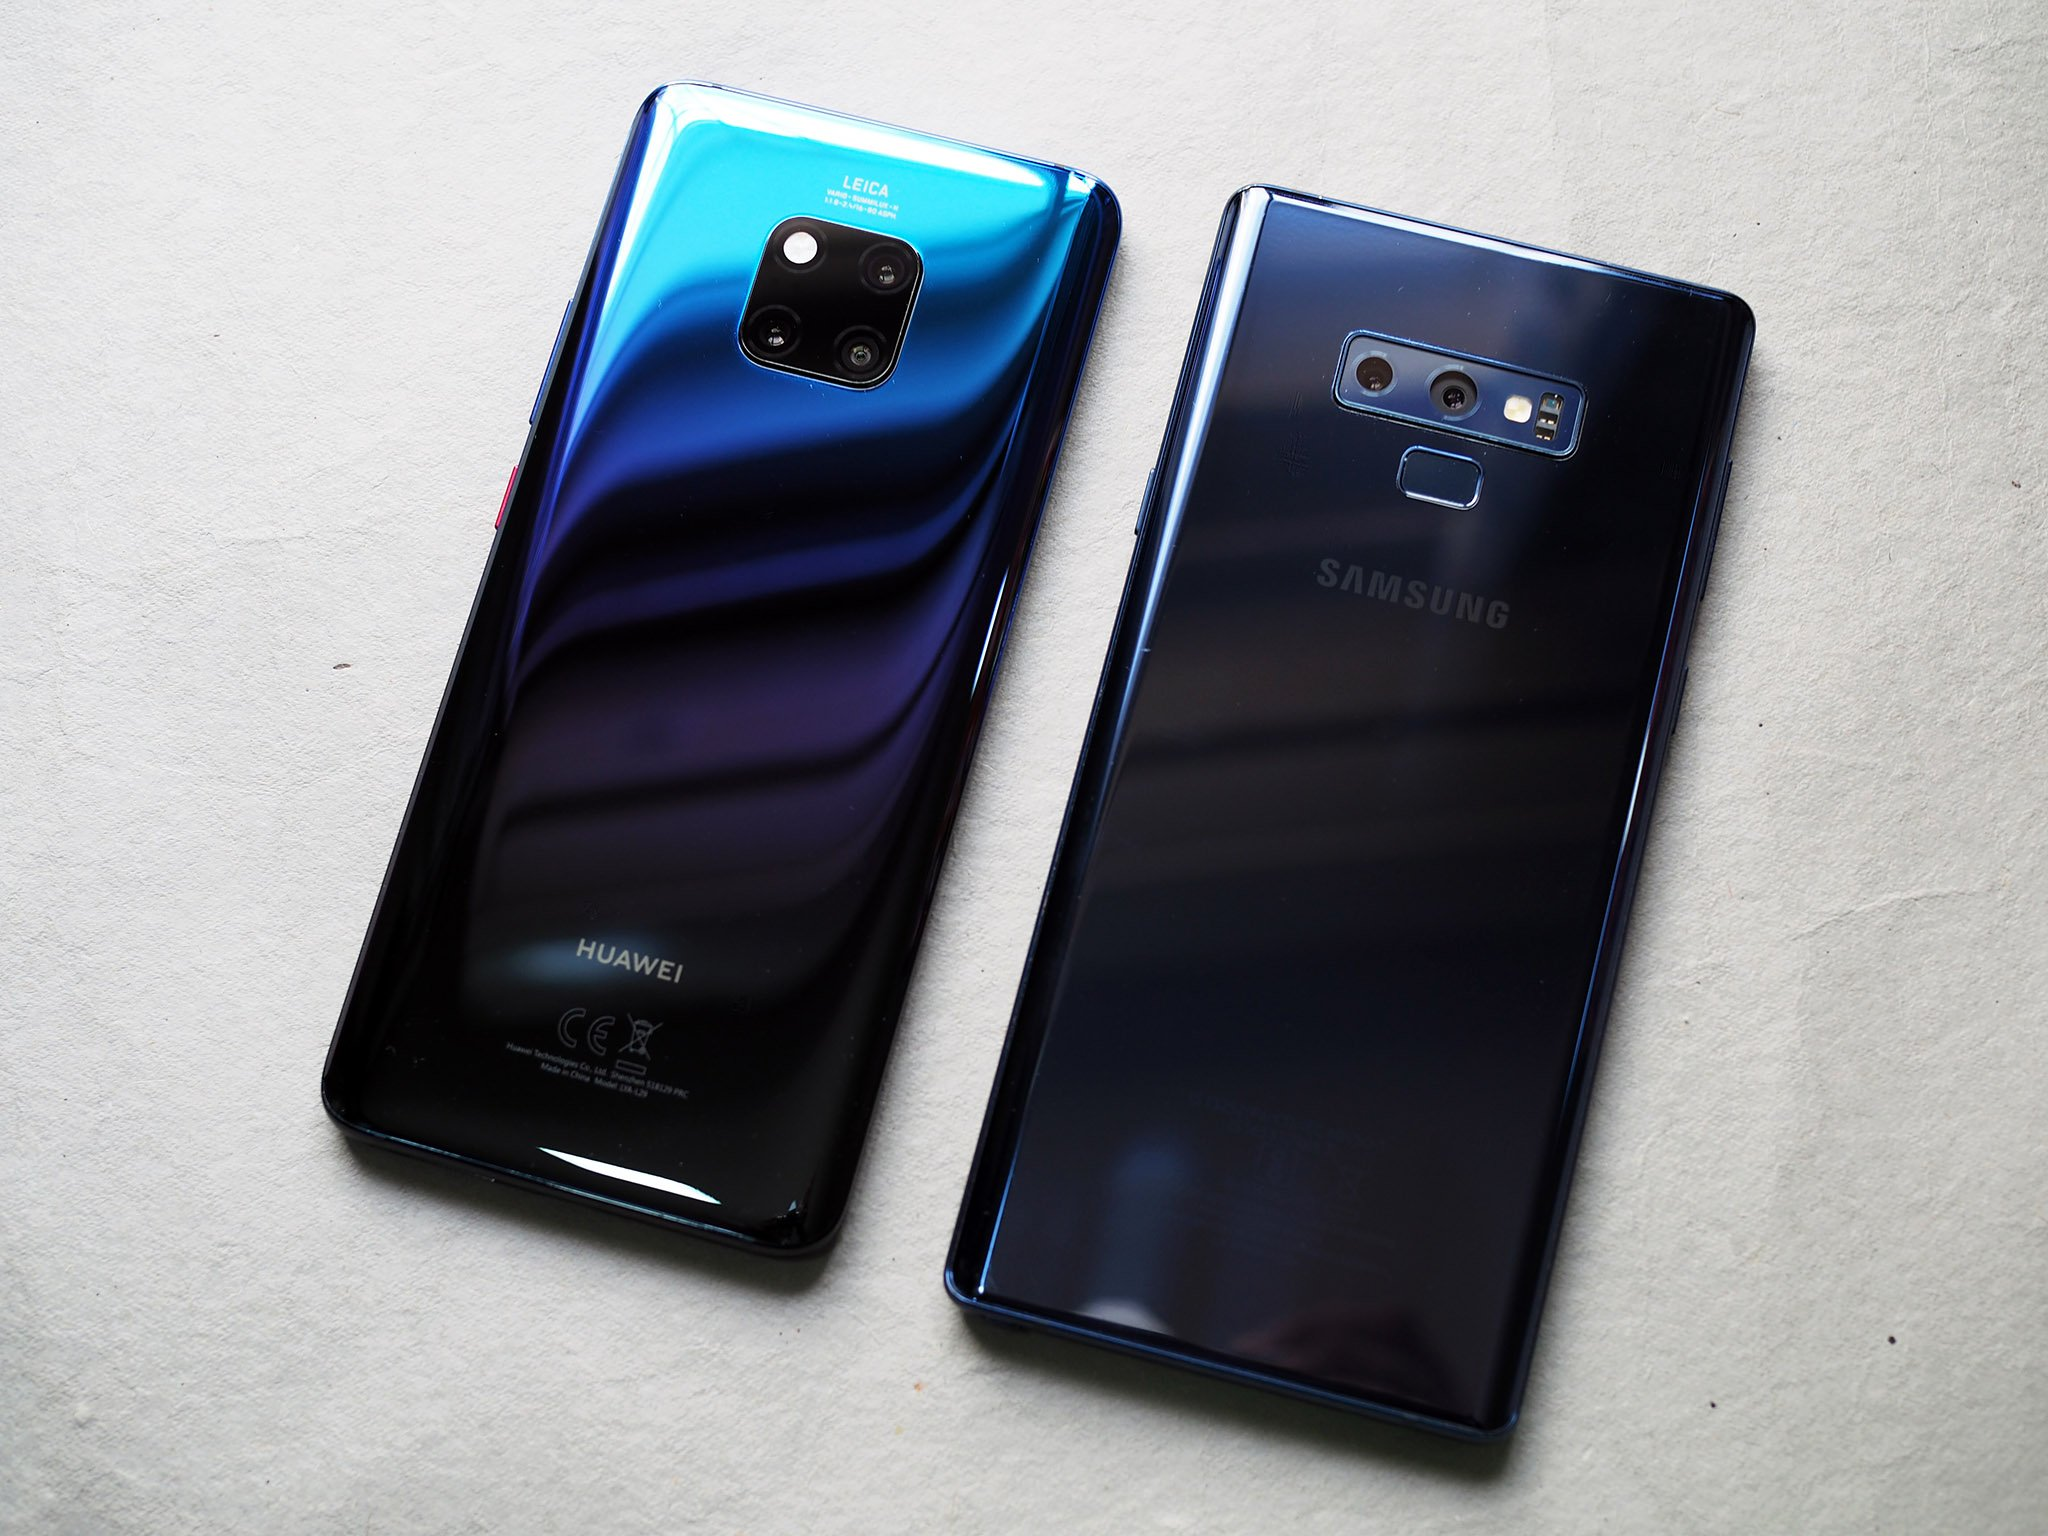 Huawei Mate 20 Pro vs. Samsung Galaxy Note 9: Which should you buy? | Android Central